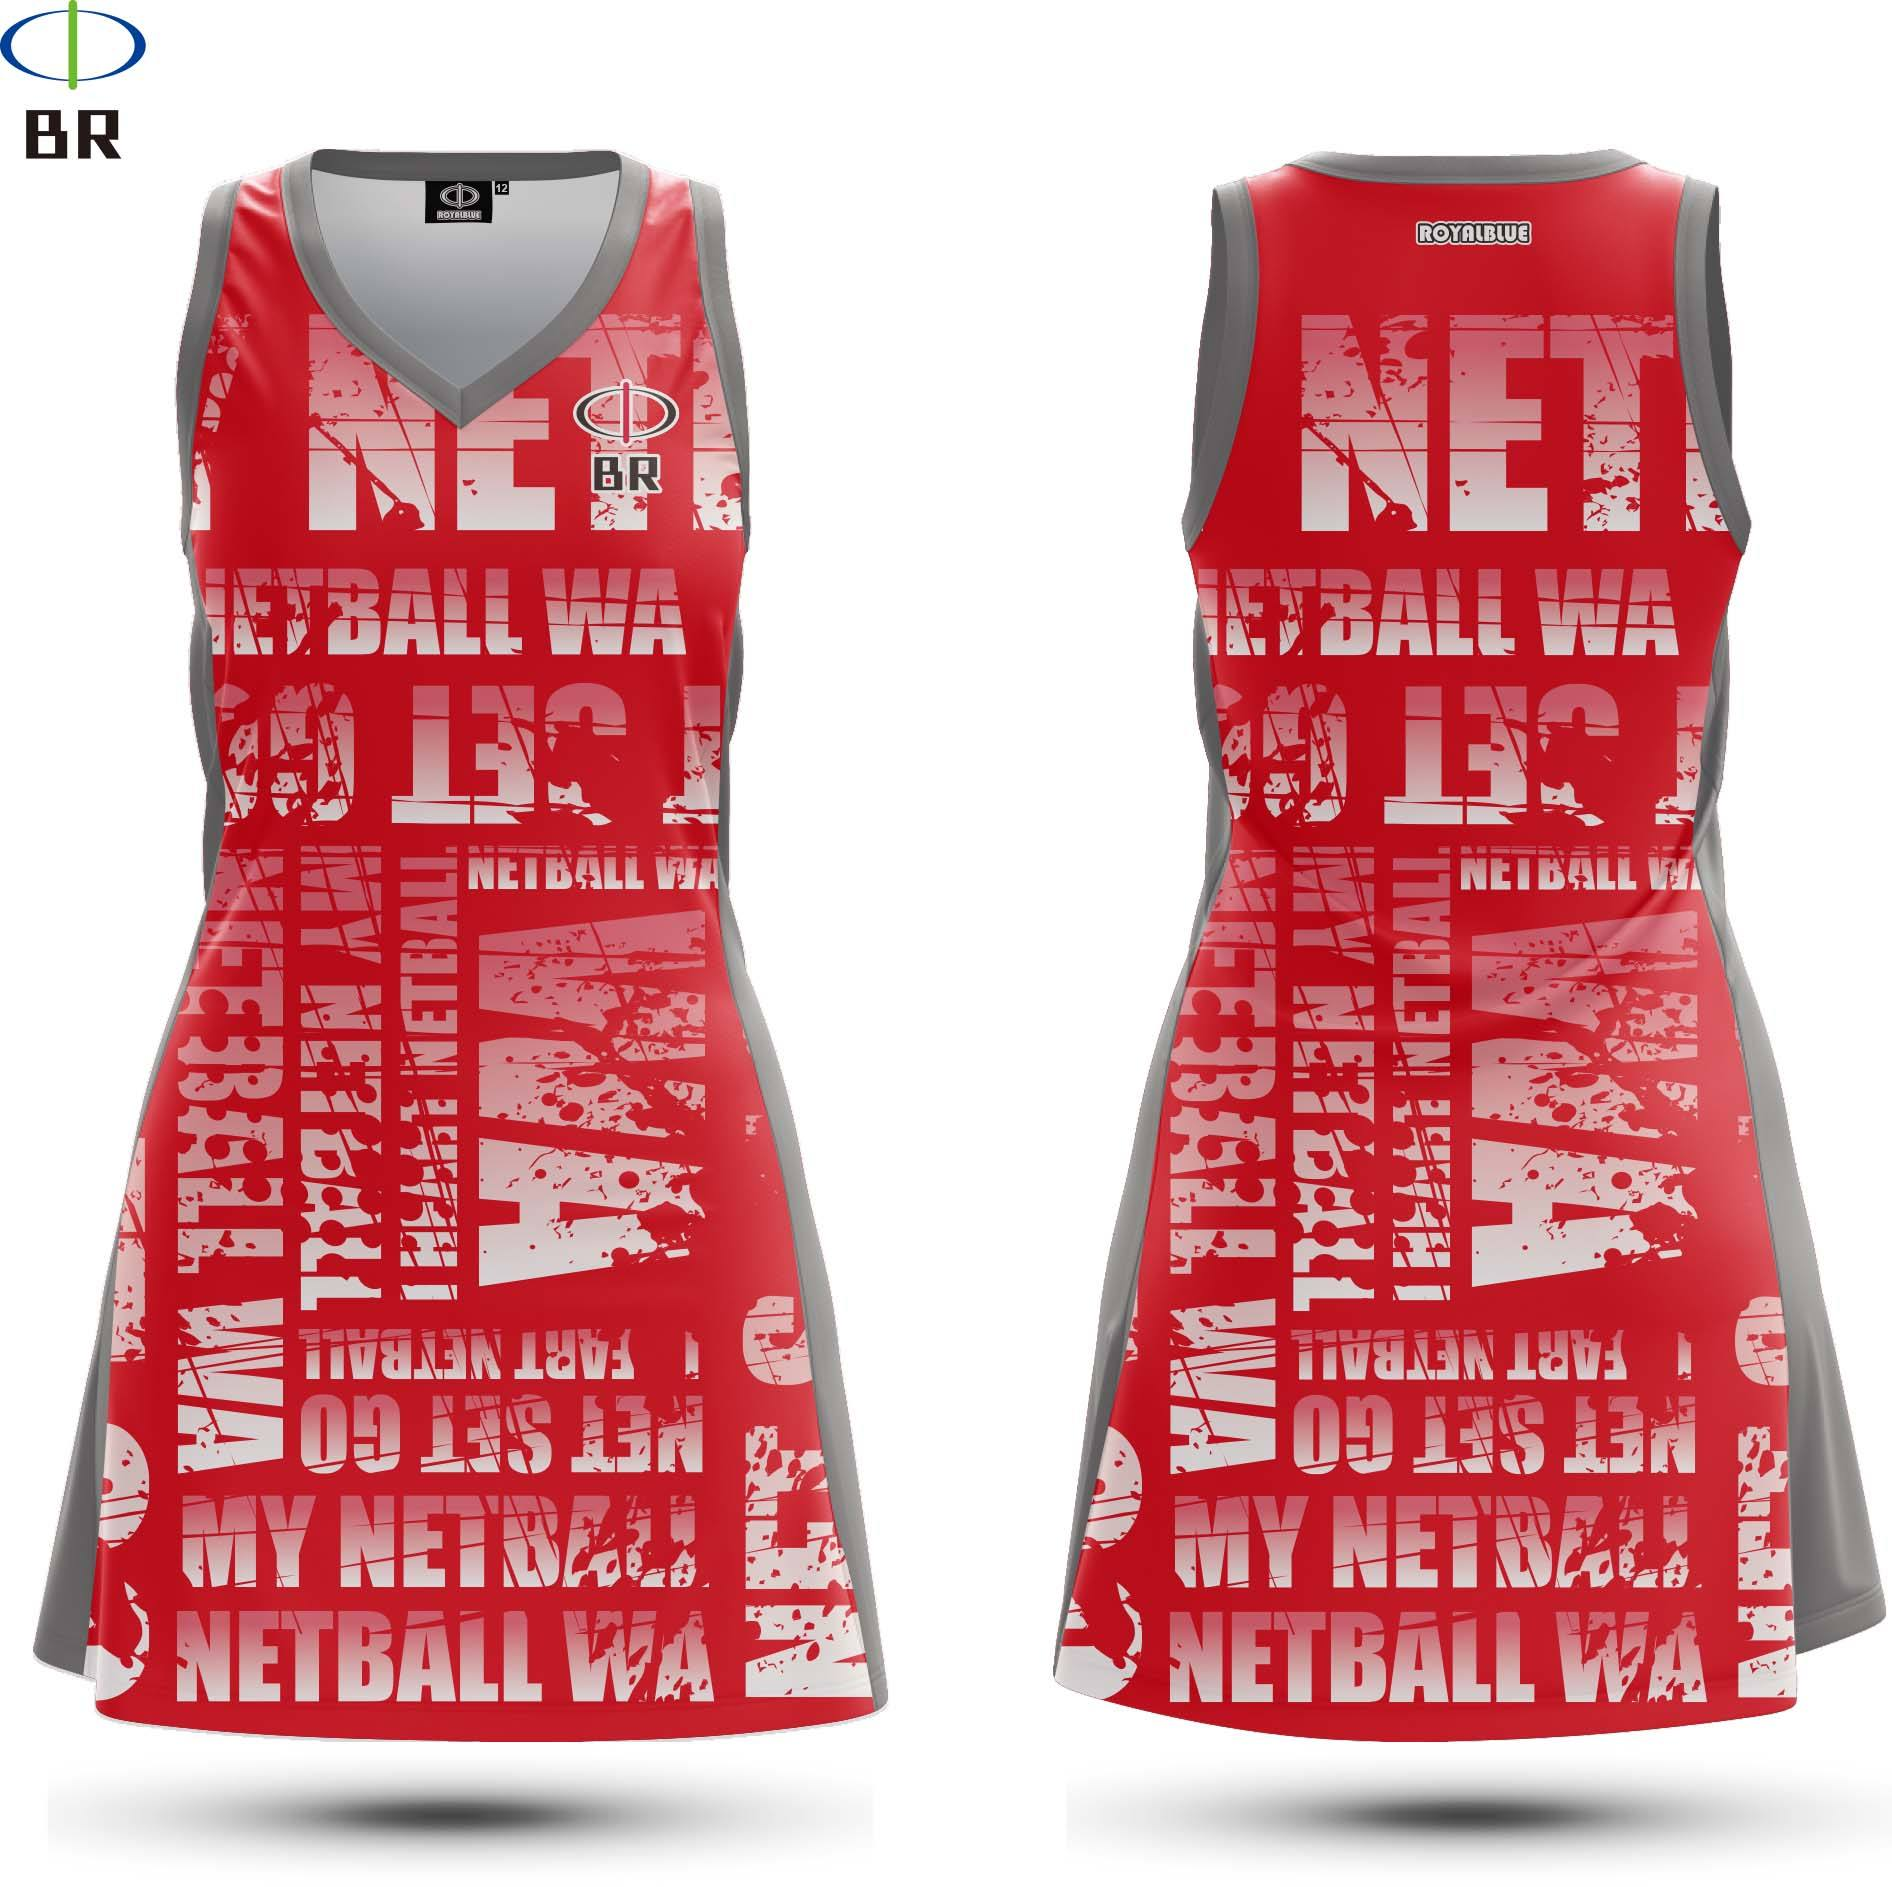 Jersey Sportswear Jersey Sportswear Suppliers And Manufacturers At Alibaba Com